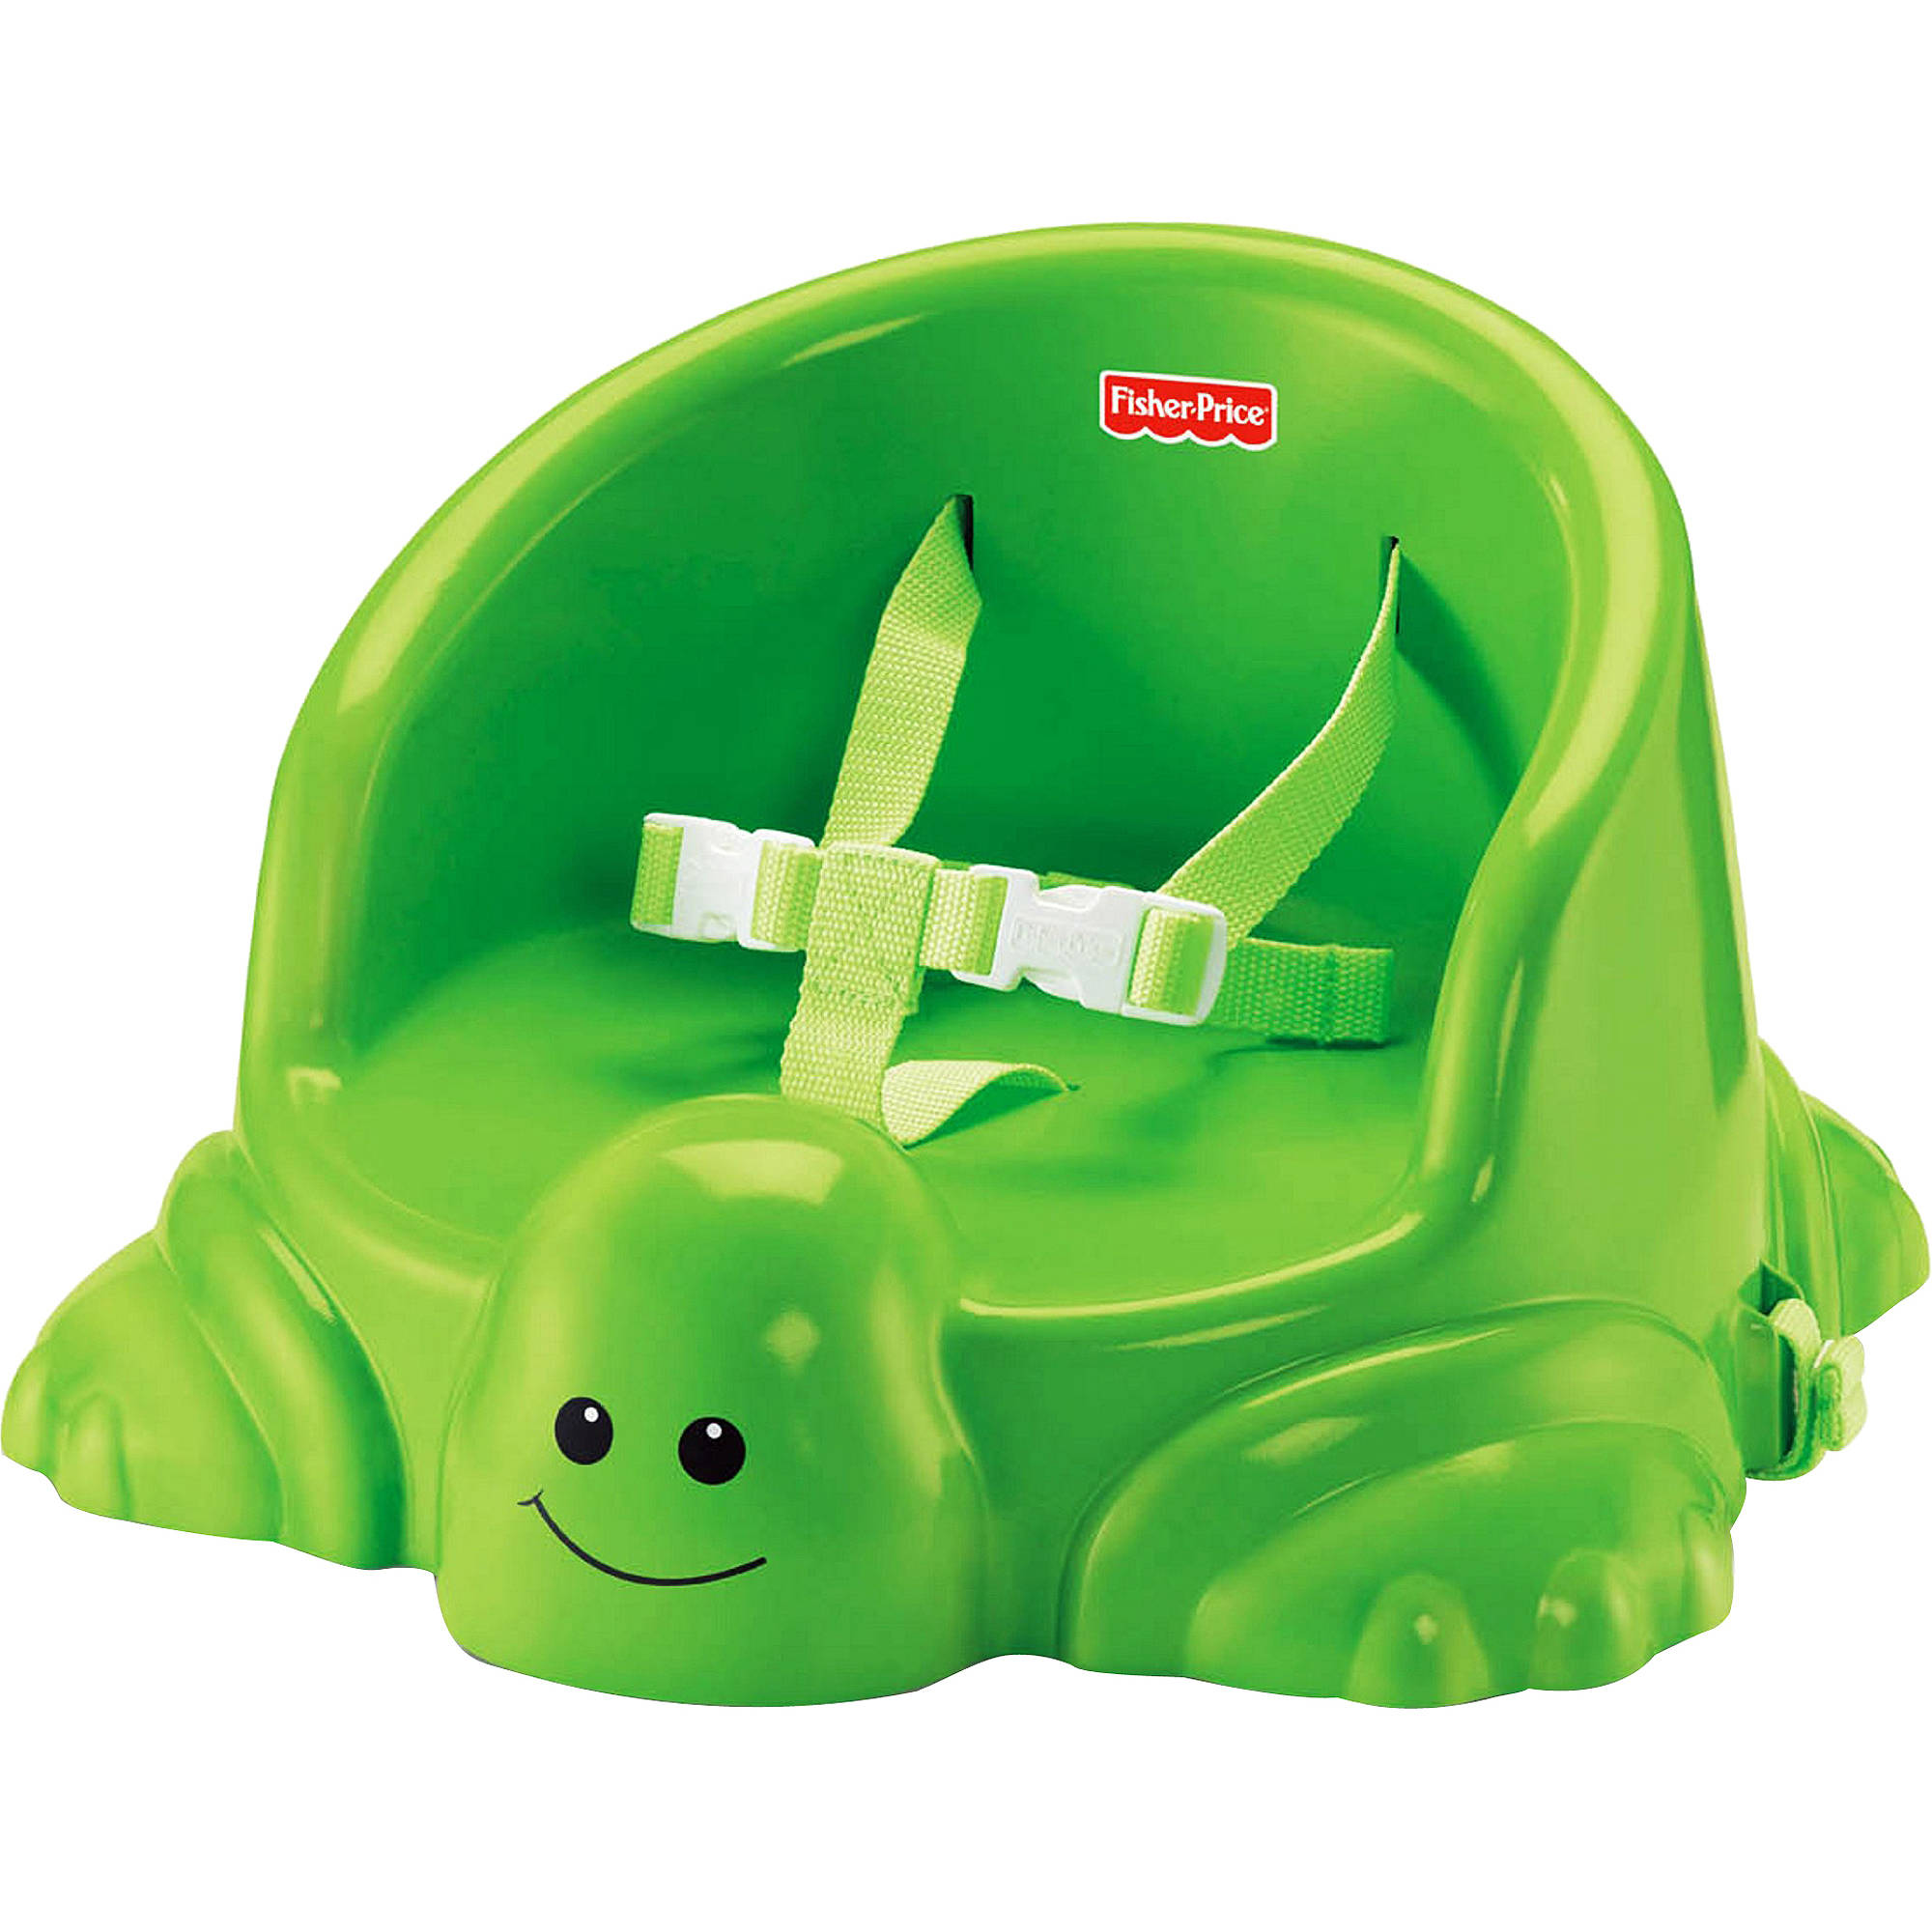 Fisher price booster chair - Fisher Price Booster Chair 32